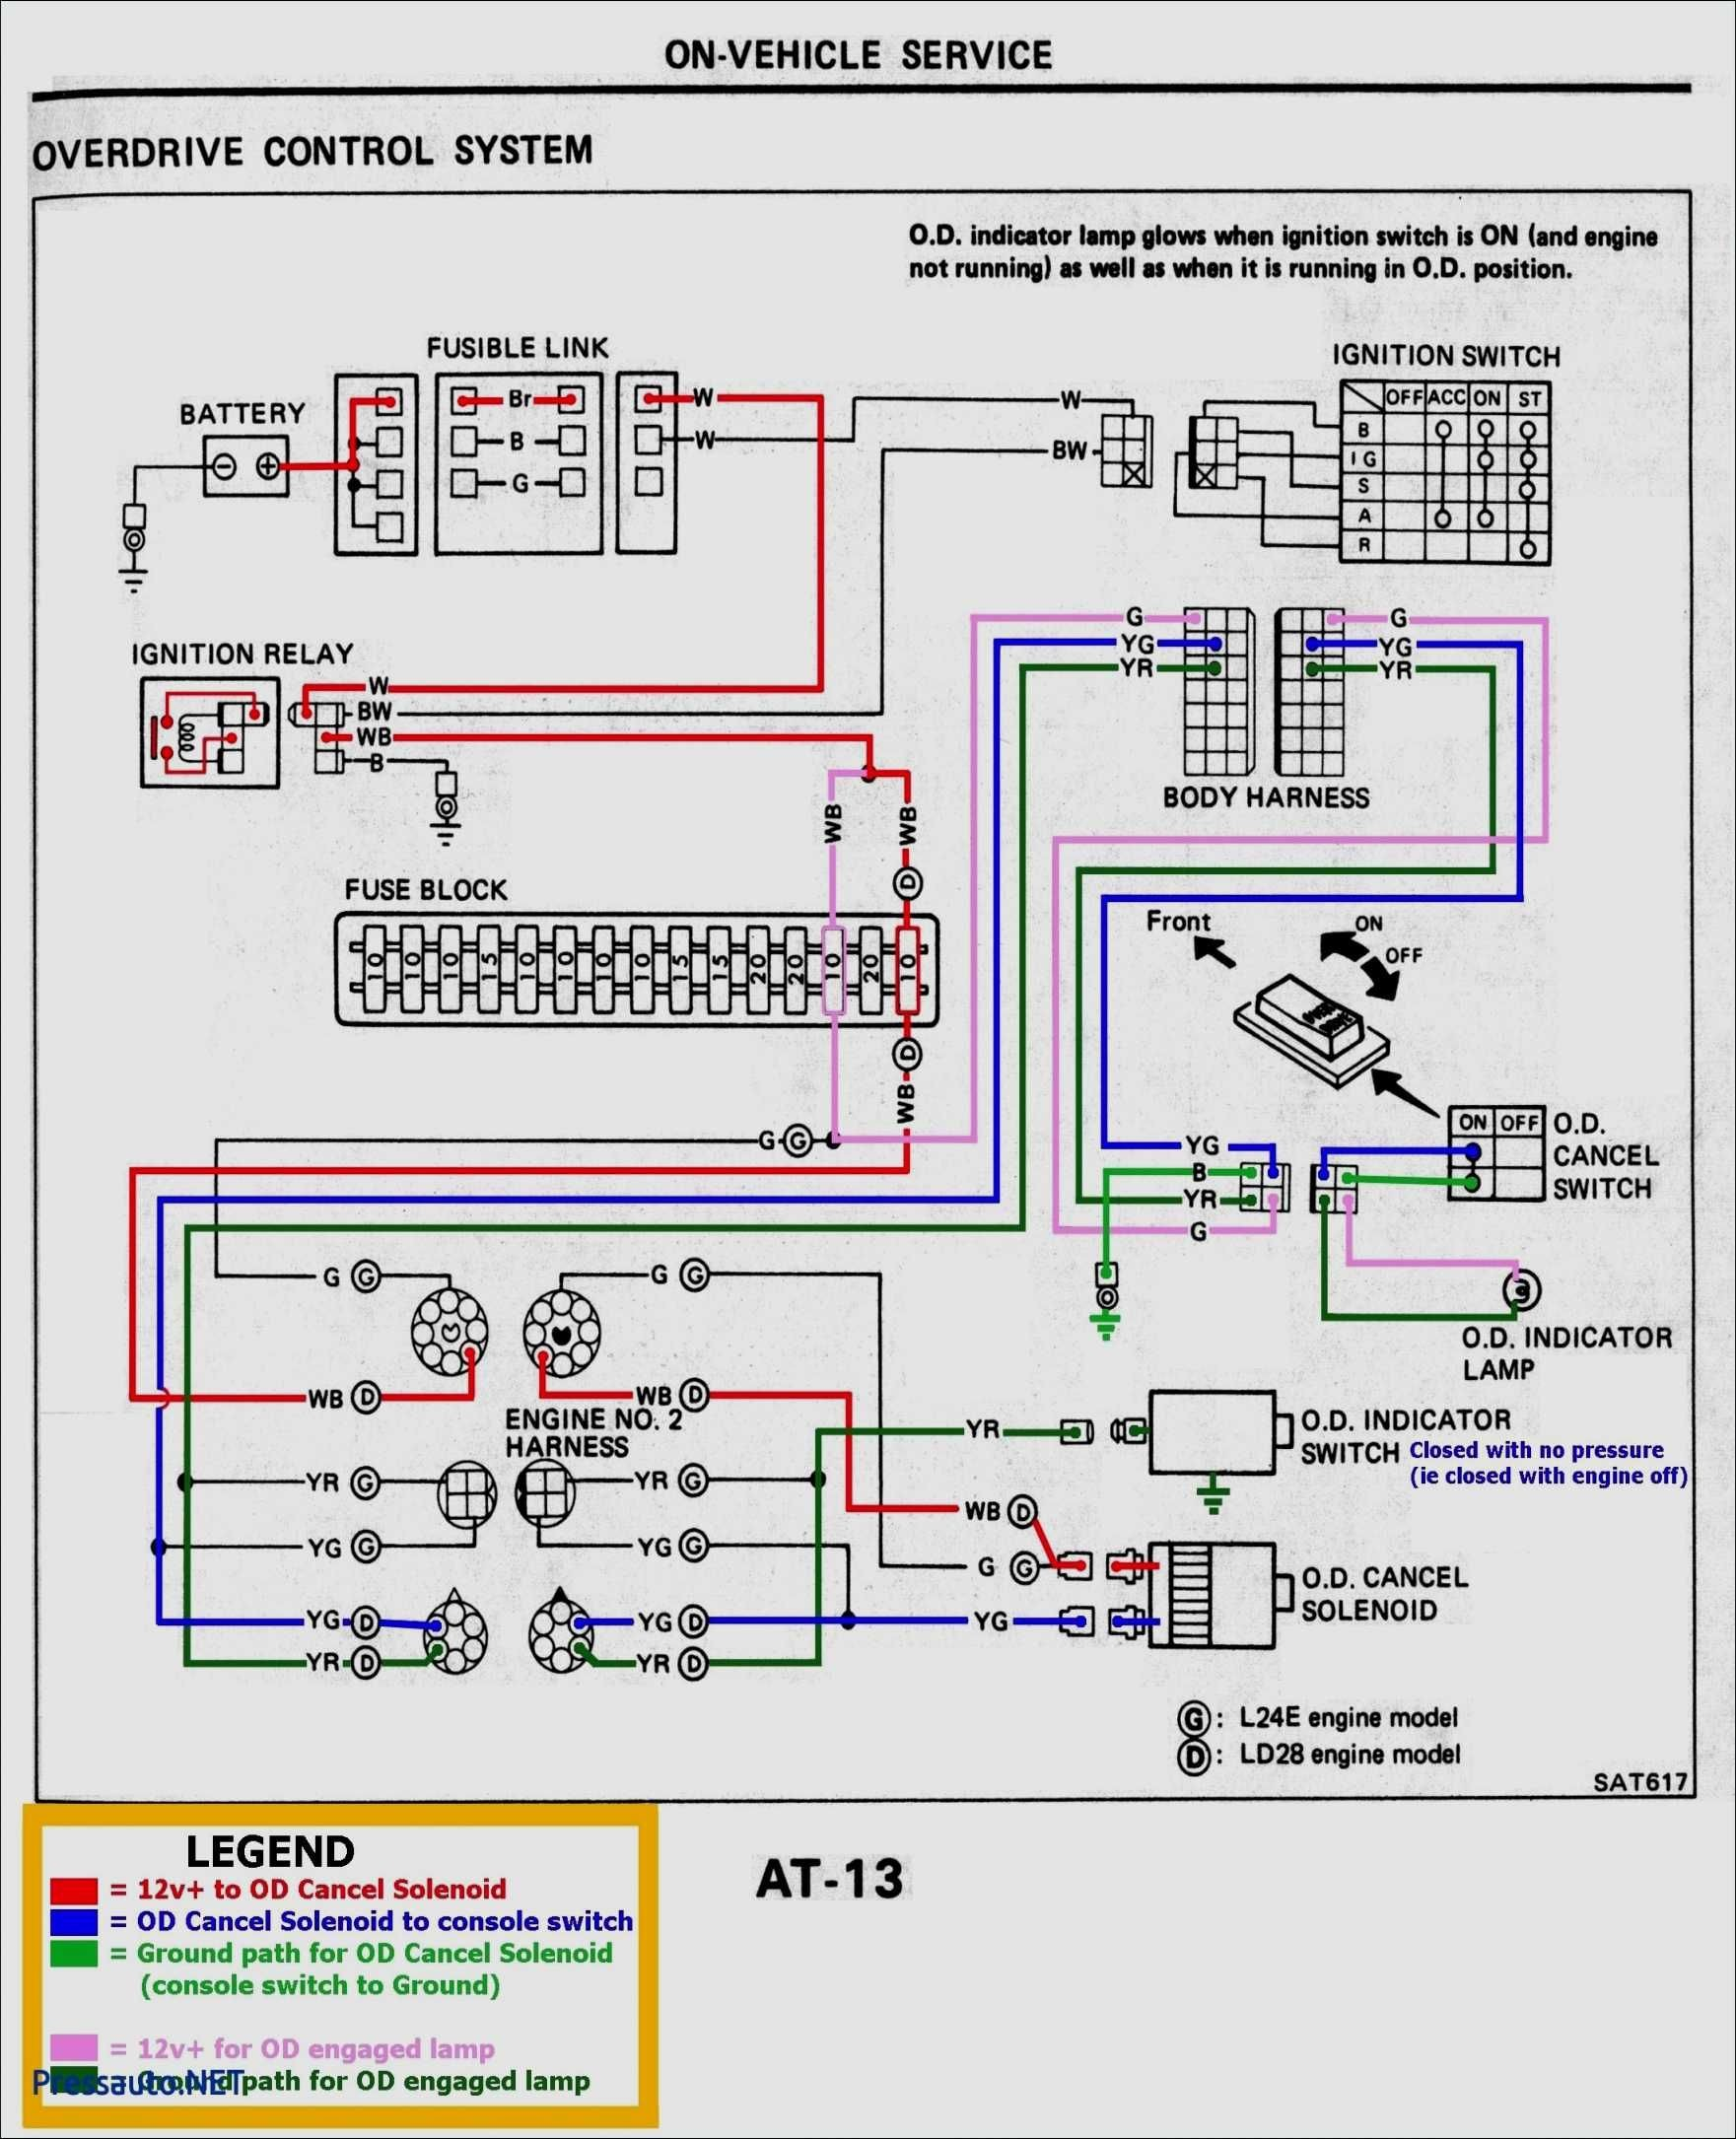 DIAGRAM] Wiring Diagram Pioneer Deh 17 FULL Version HD Quality Deh 17 -  SURROUNDWIRING.ATELIERDUCOIN.FR surroundwiring.atelierducoin.fr